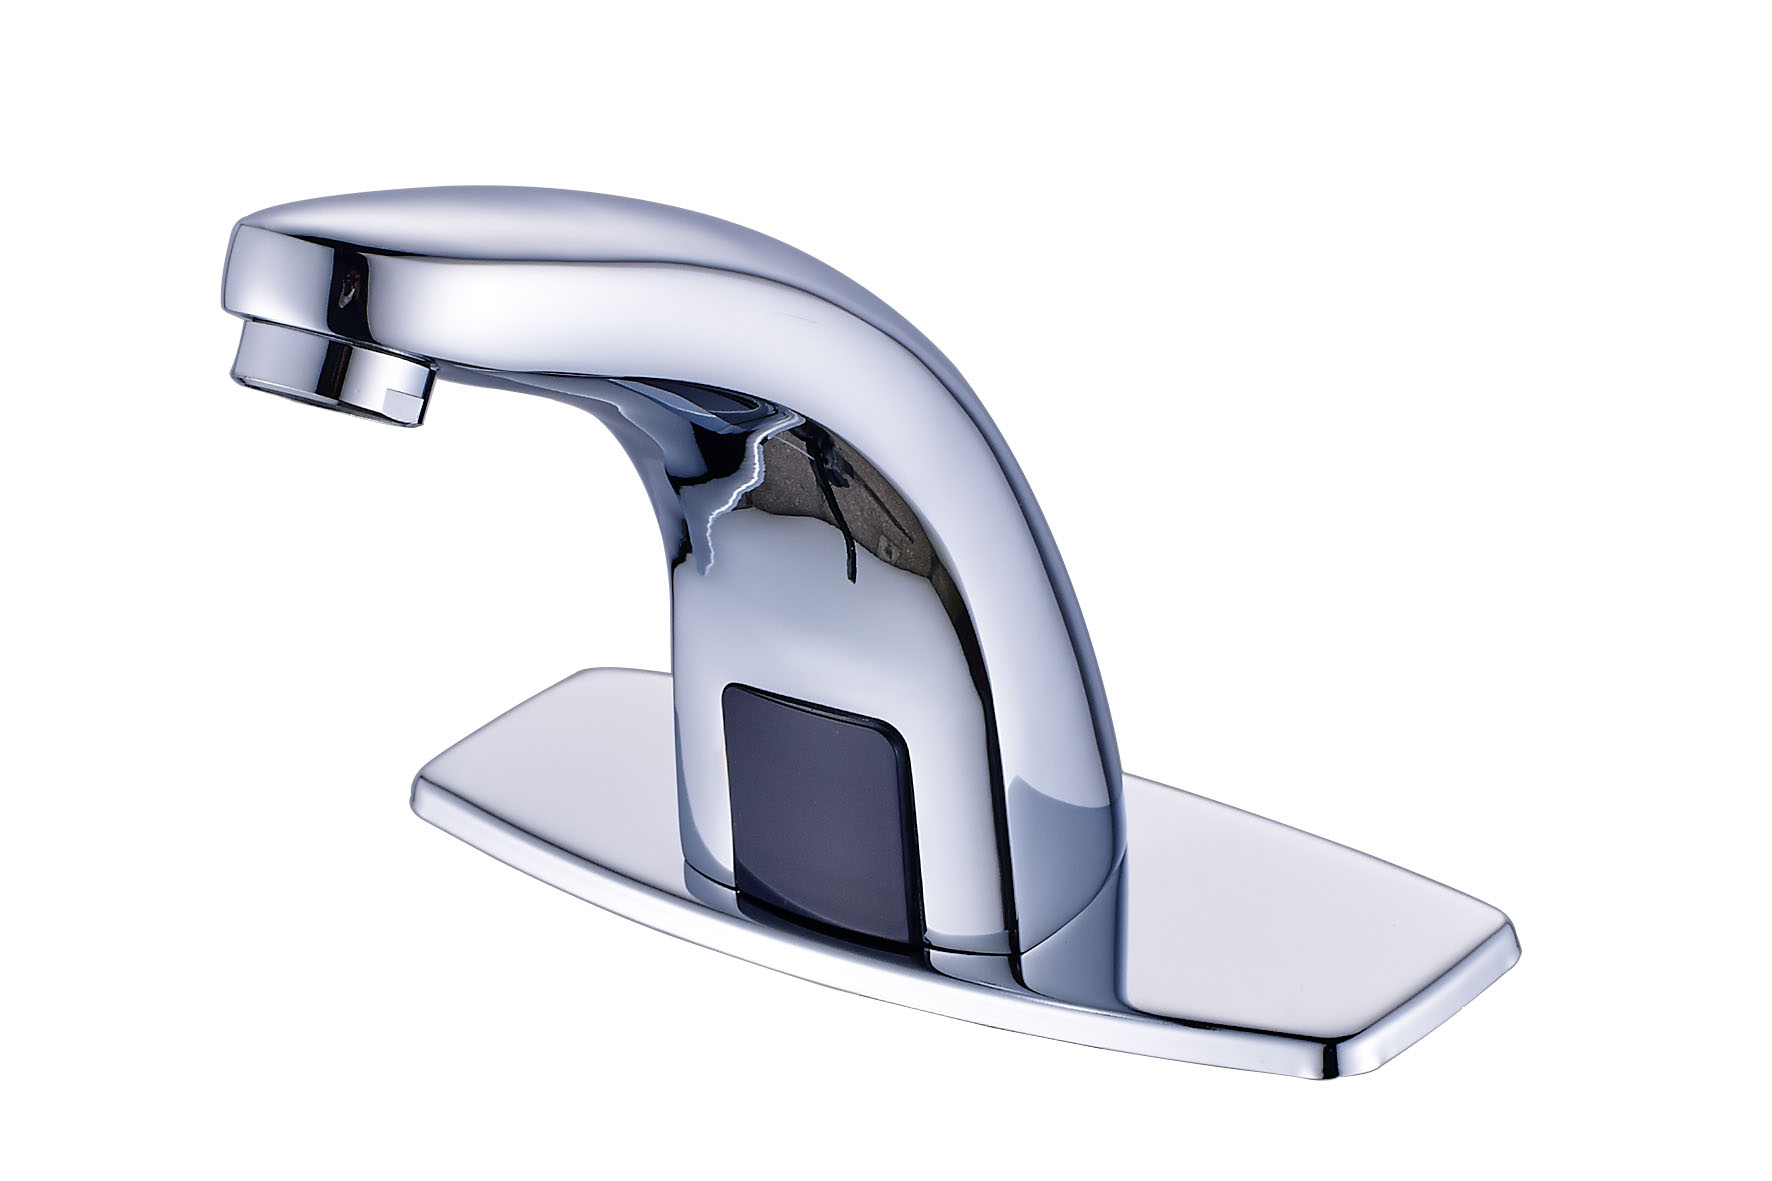 Chrome Automatic Sensor Touchless Bathroom Sink Faucet With Hole Cover Plate